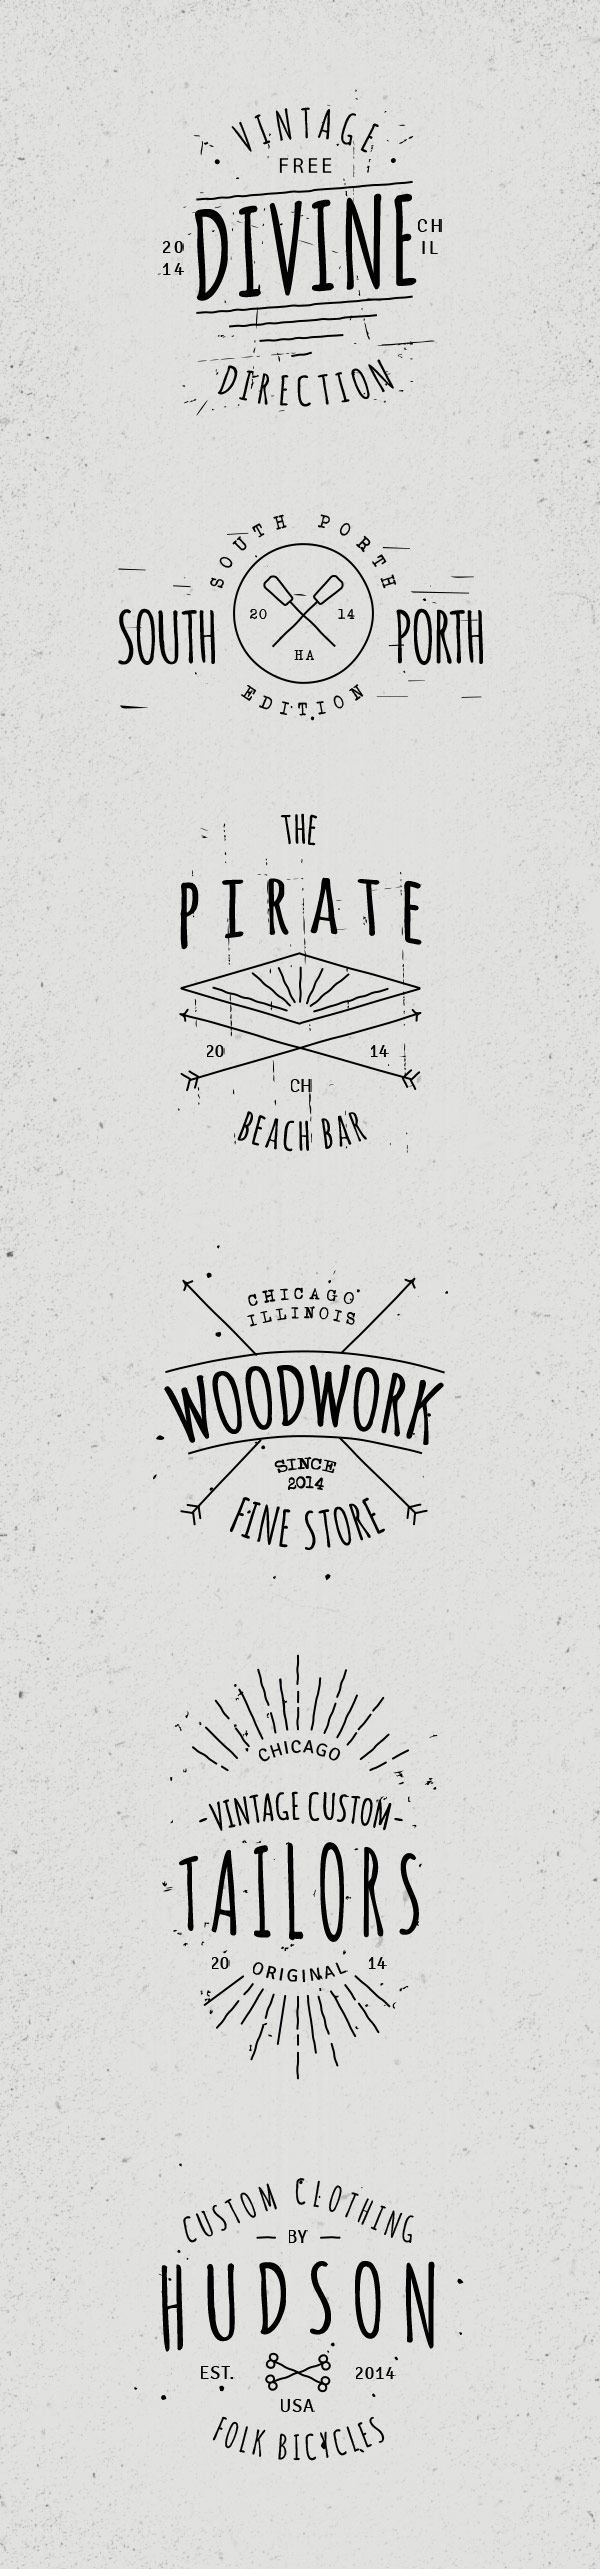 free-best-vintage-logos-badges-collection-graphic-designers-2014 (9)